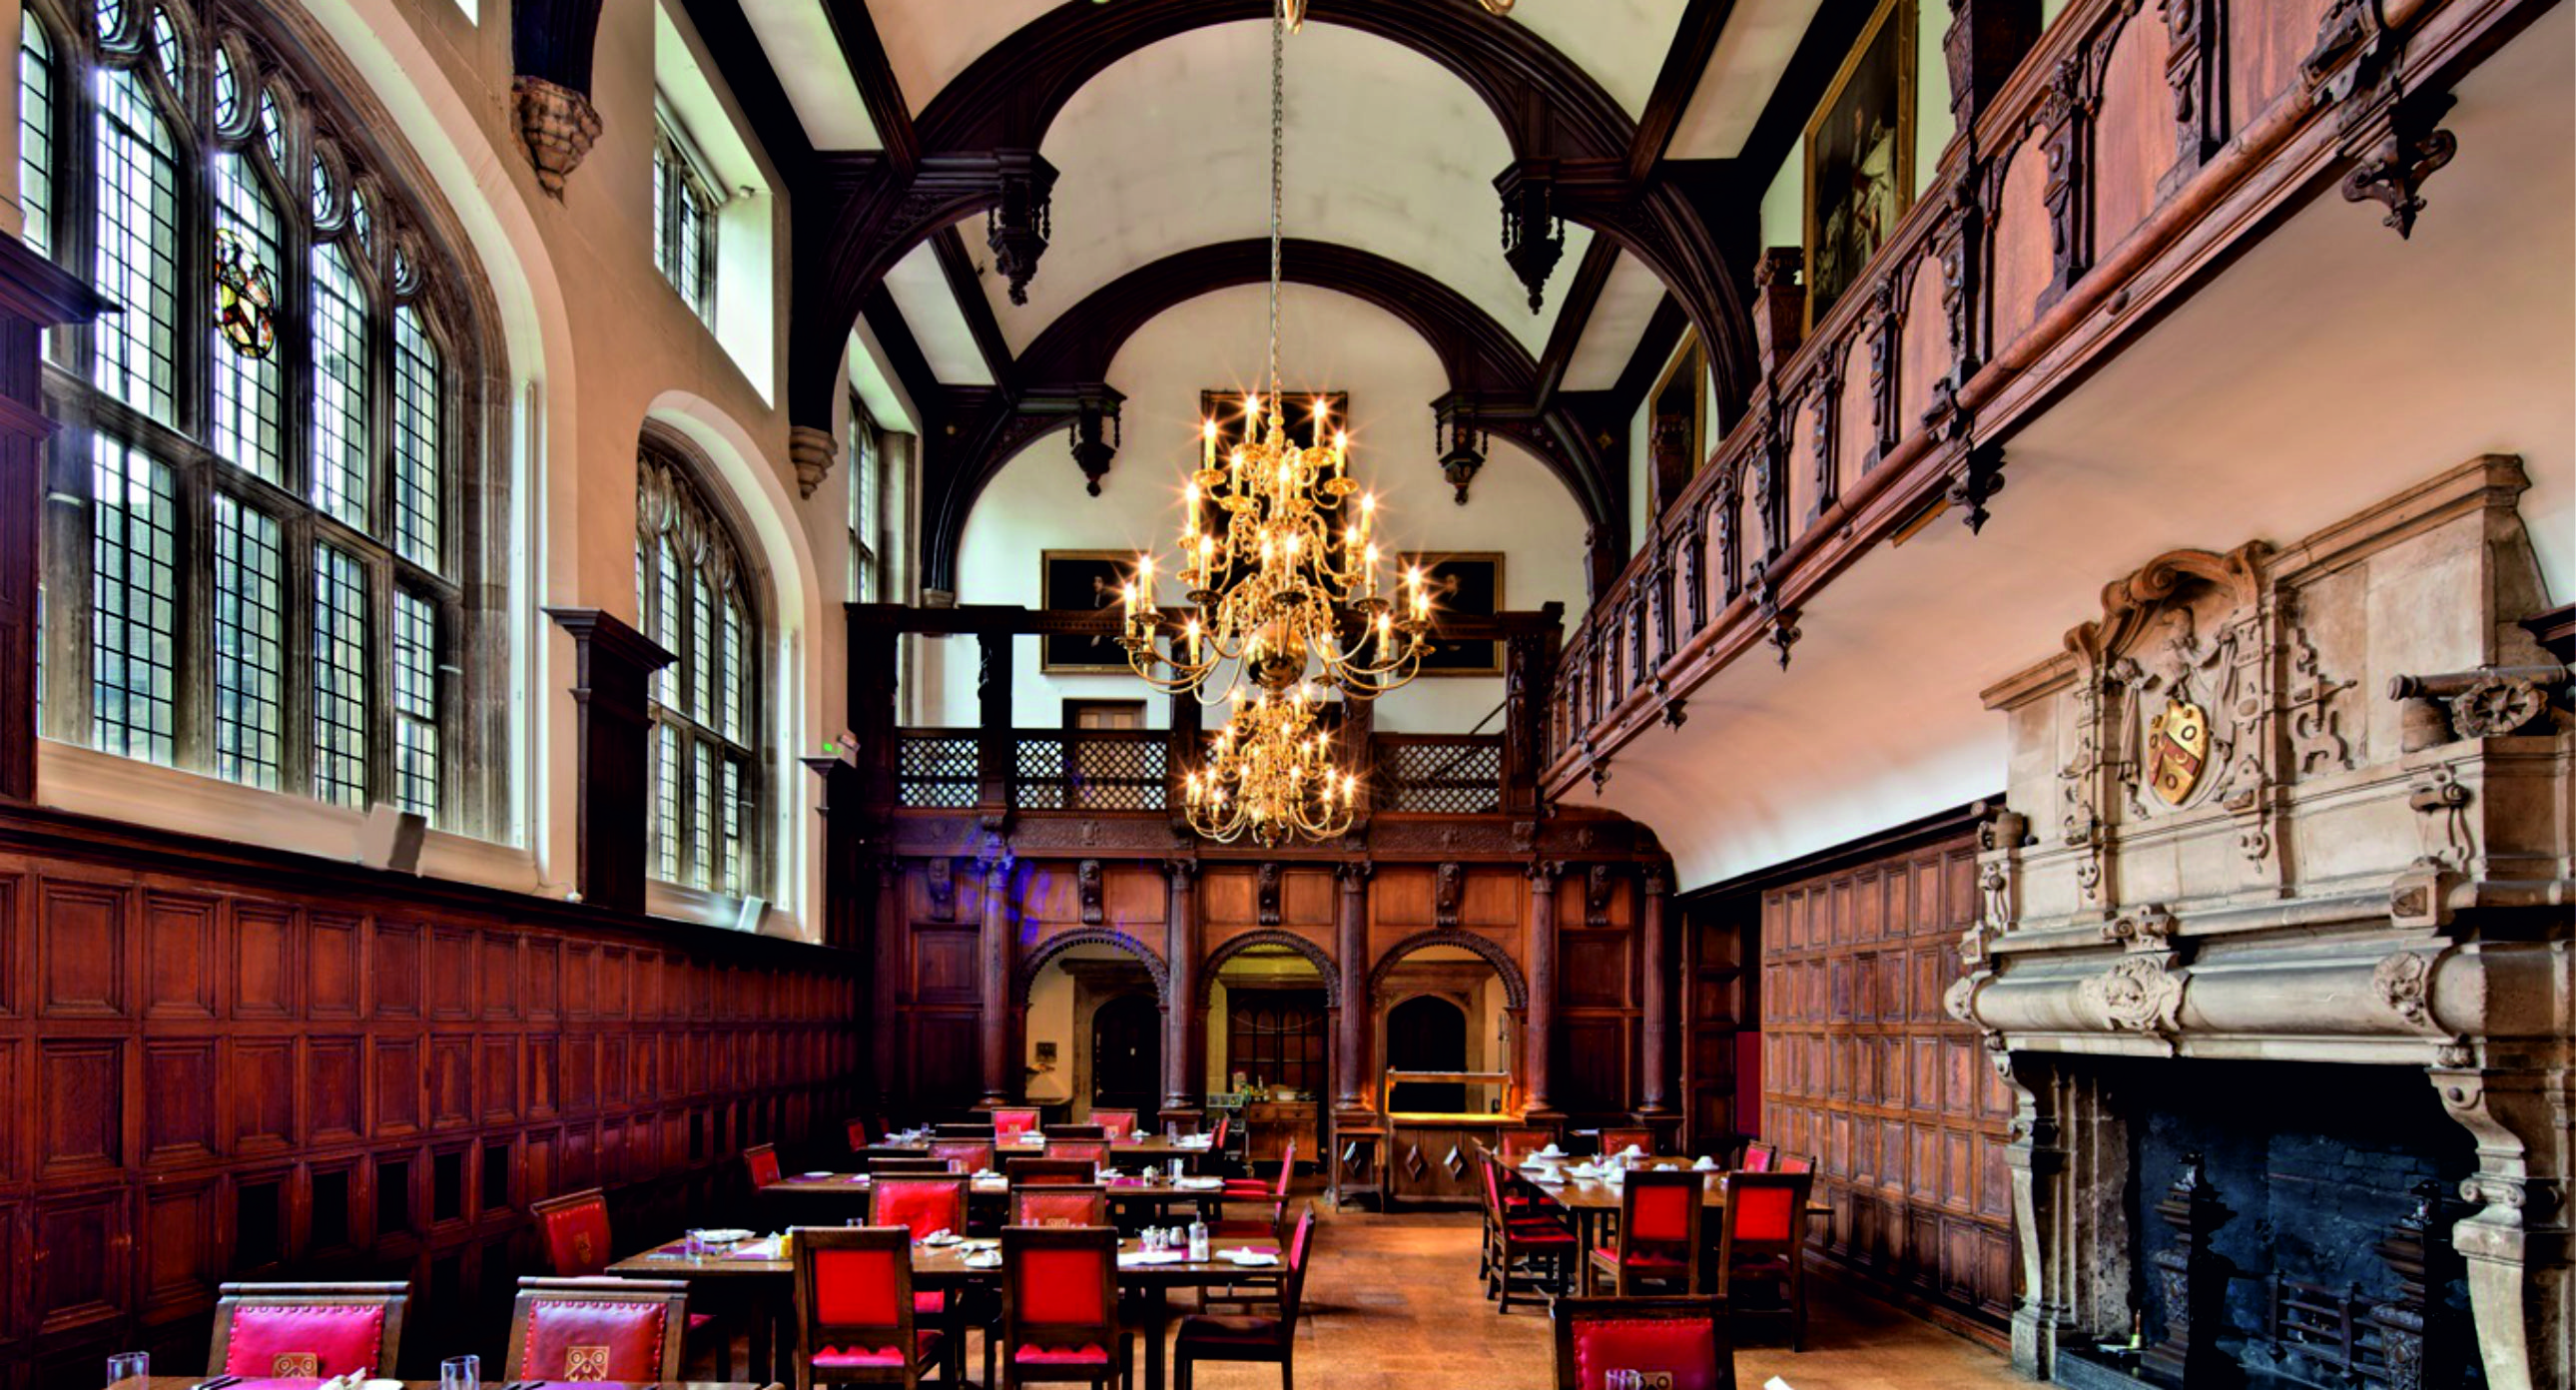 http://www.thecharterhouse.org/wp-content/uploads/2018/09/great-hall.jpg